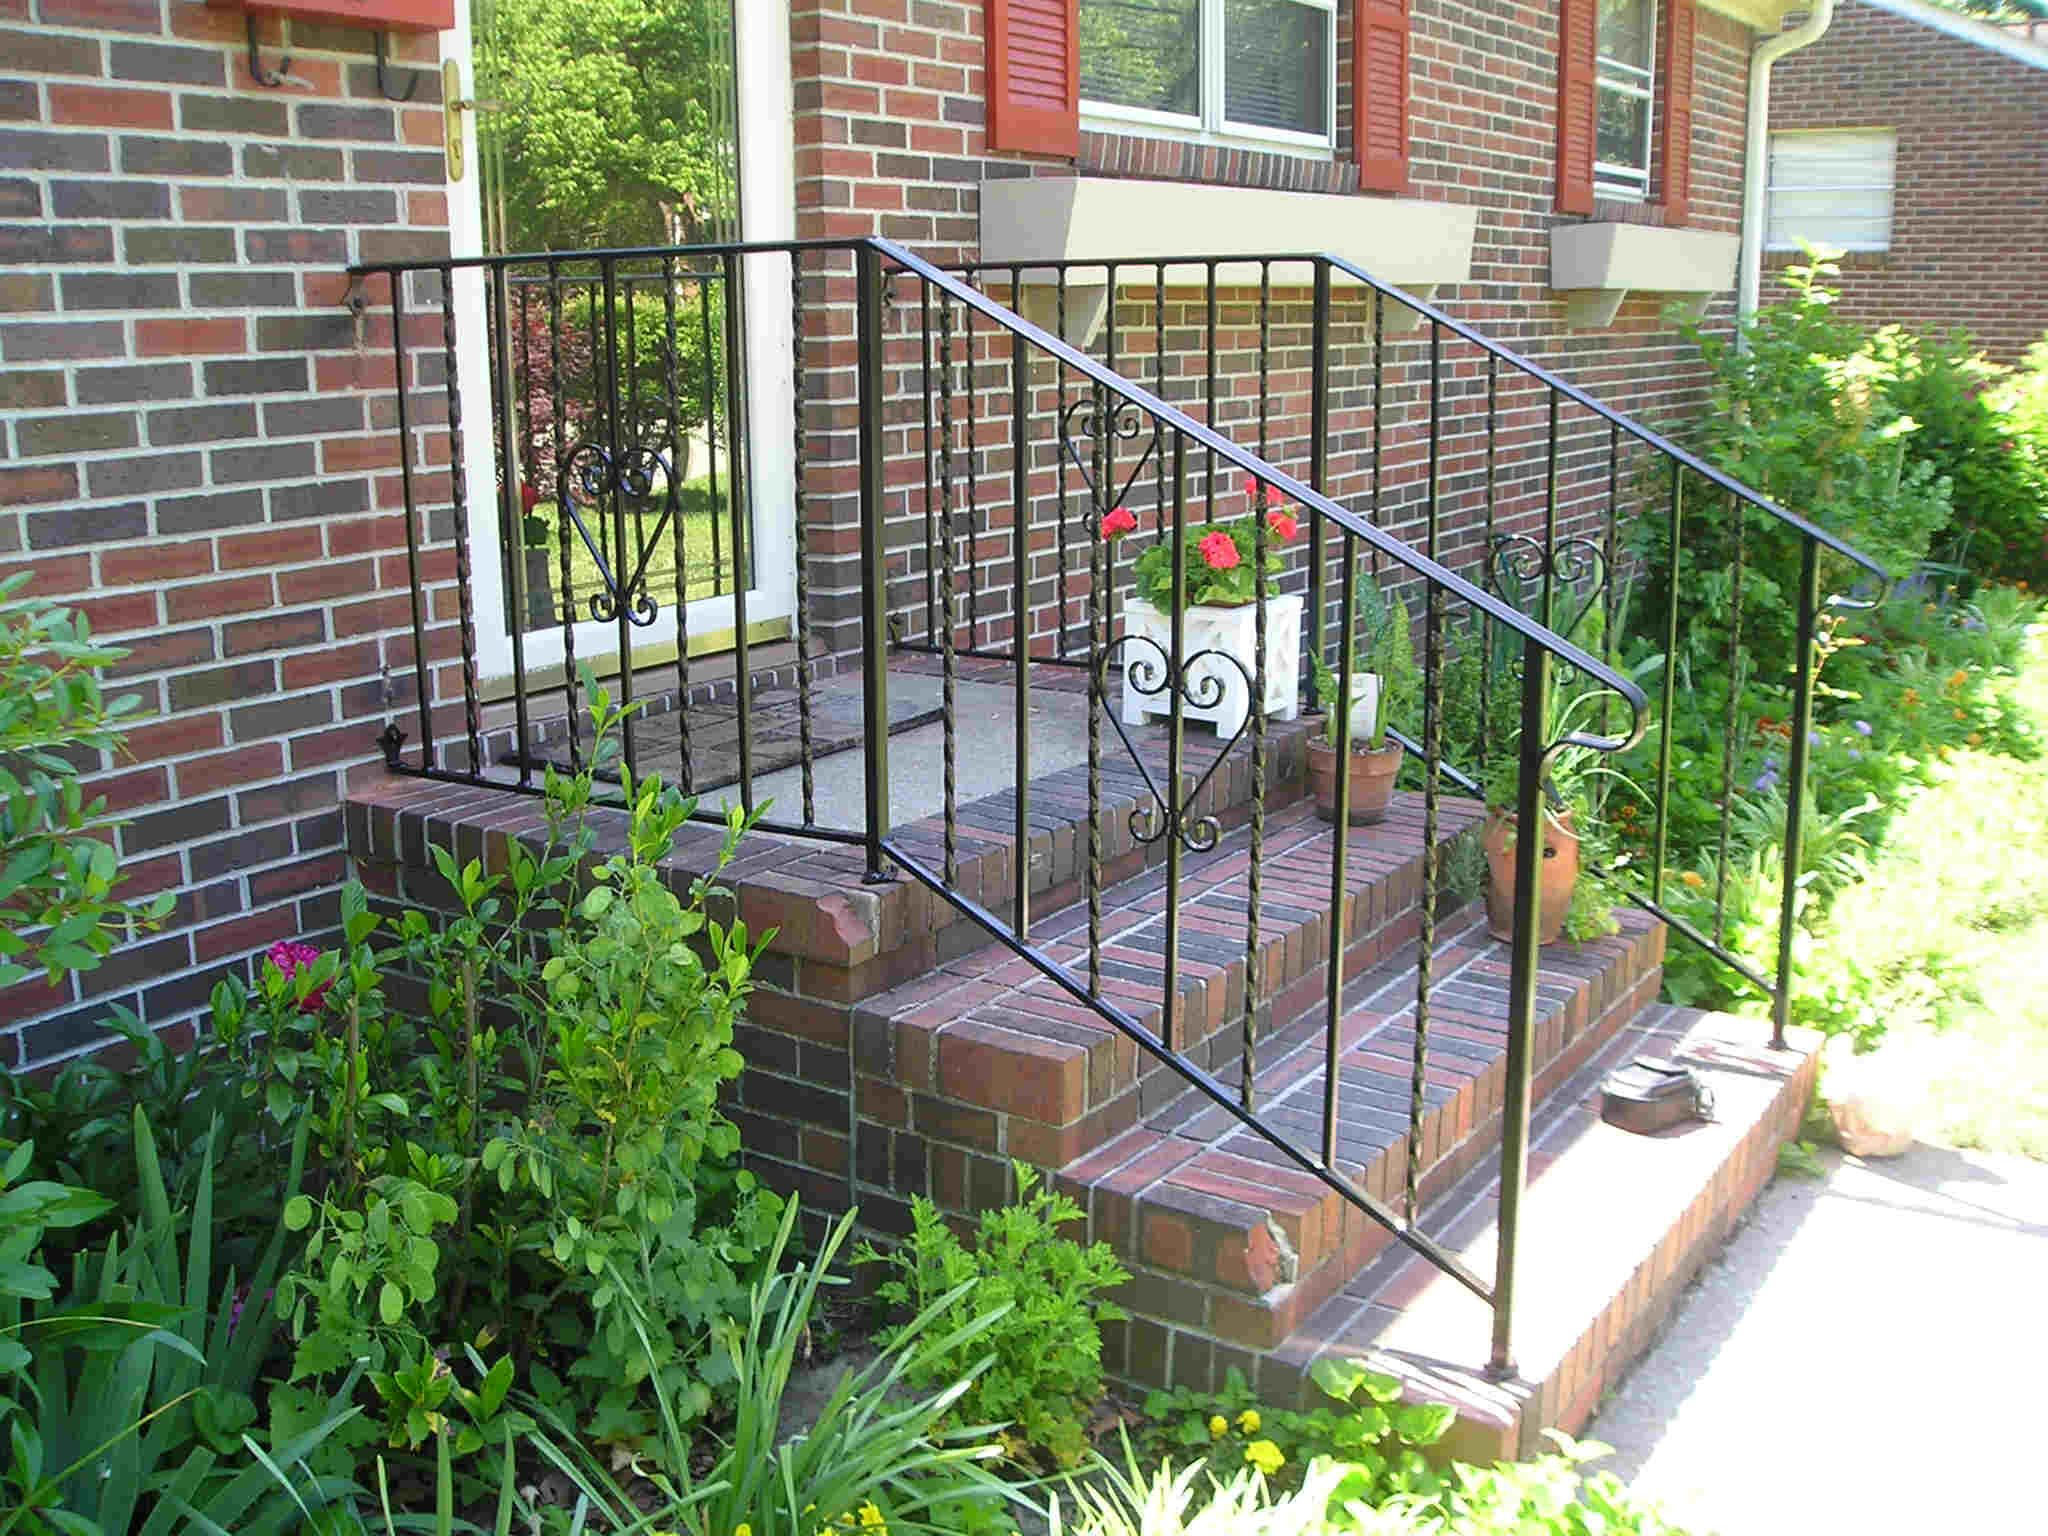 Pin By Aldea D On Parents Stuff Outdoor Stair Railing Outdoor   Outdoor Front Step Railings   Wrought Iron Railings   Wood   Deck Railing   Deck   Concrete Steps